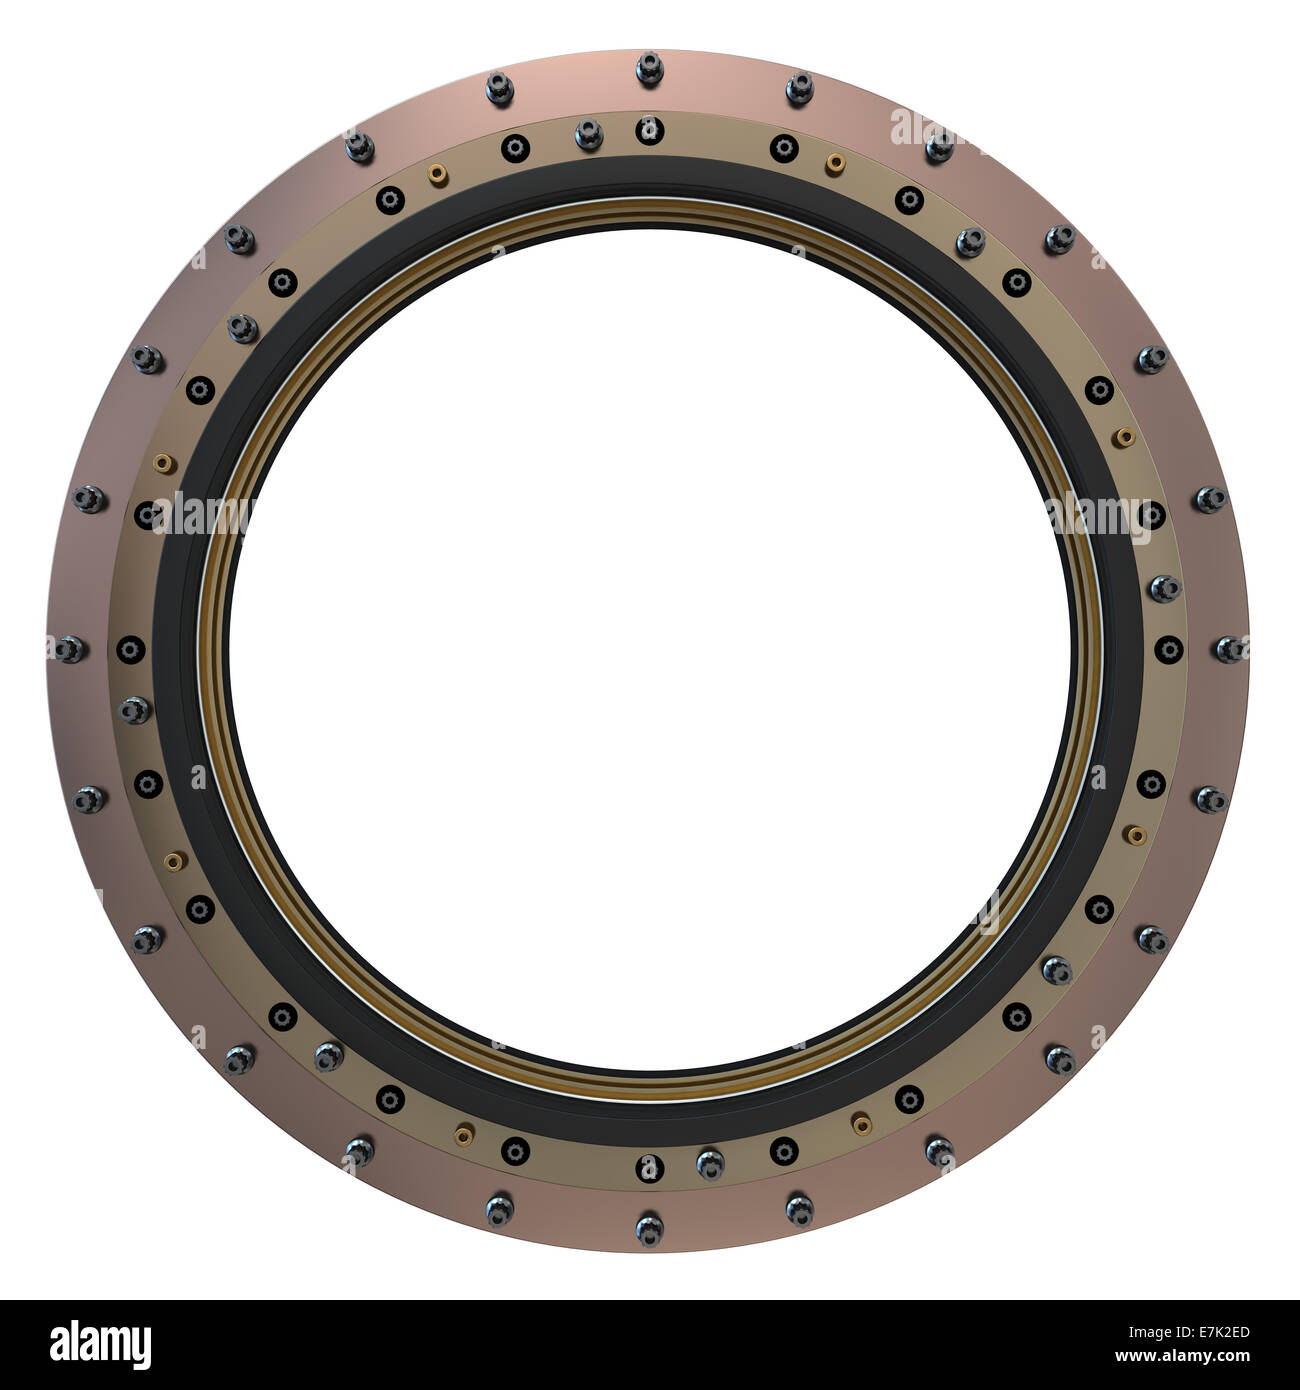 Spacecraft Porthole - Stock Image